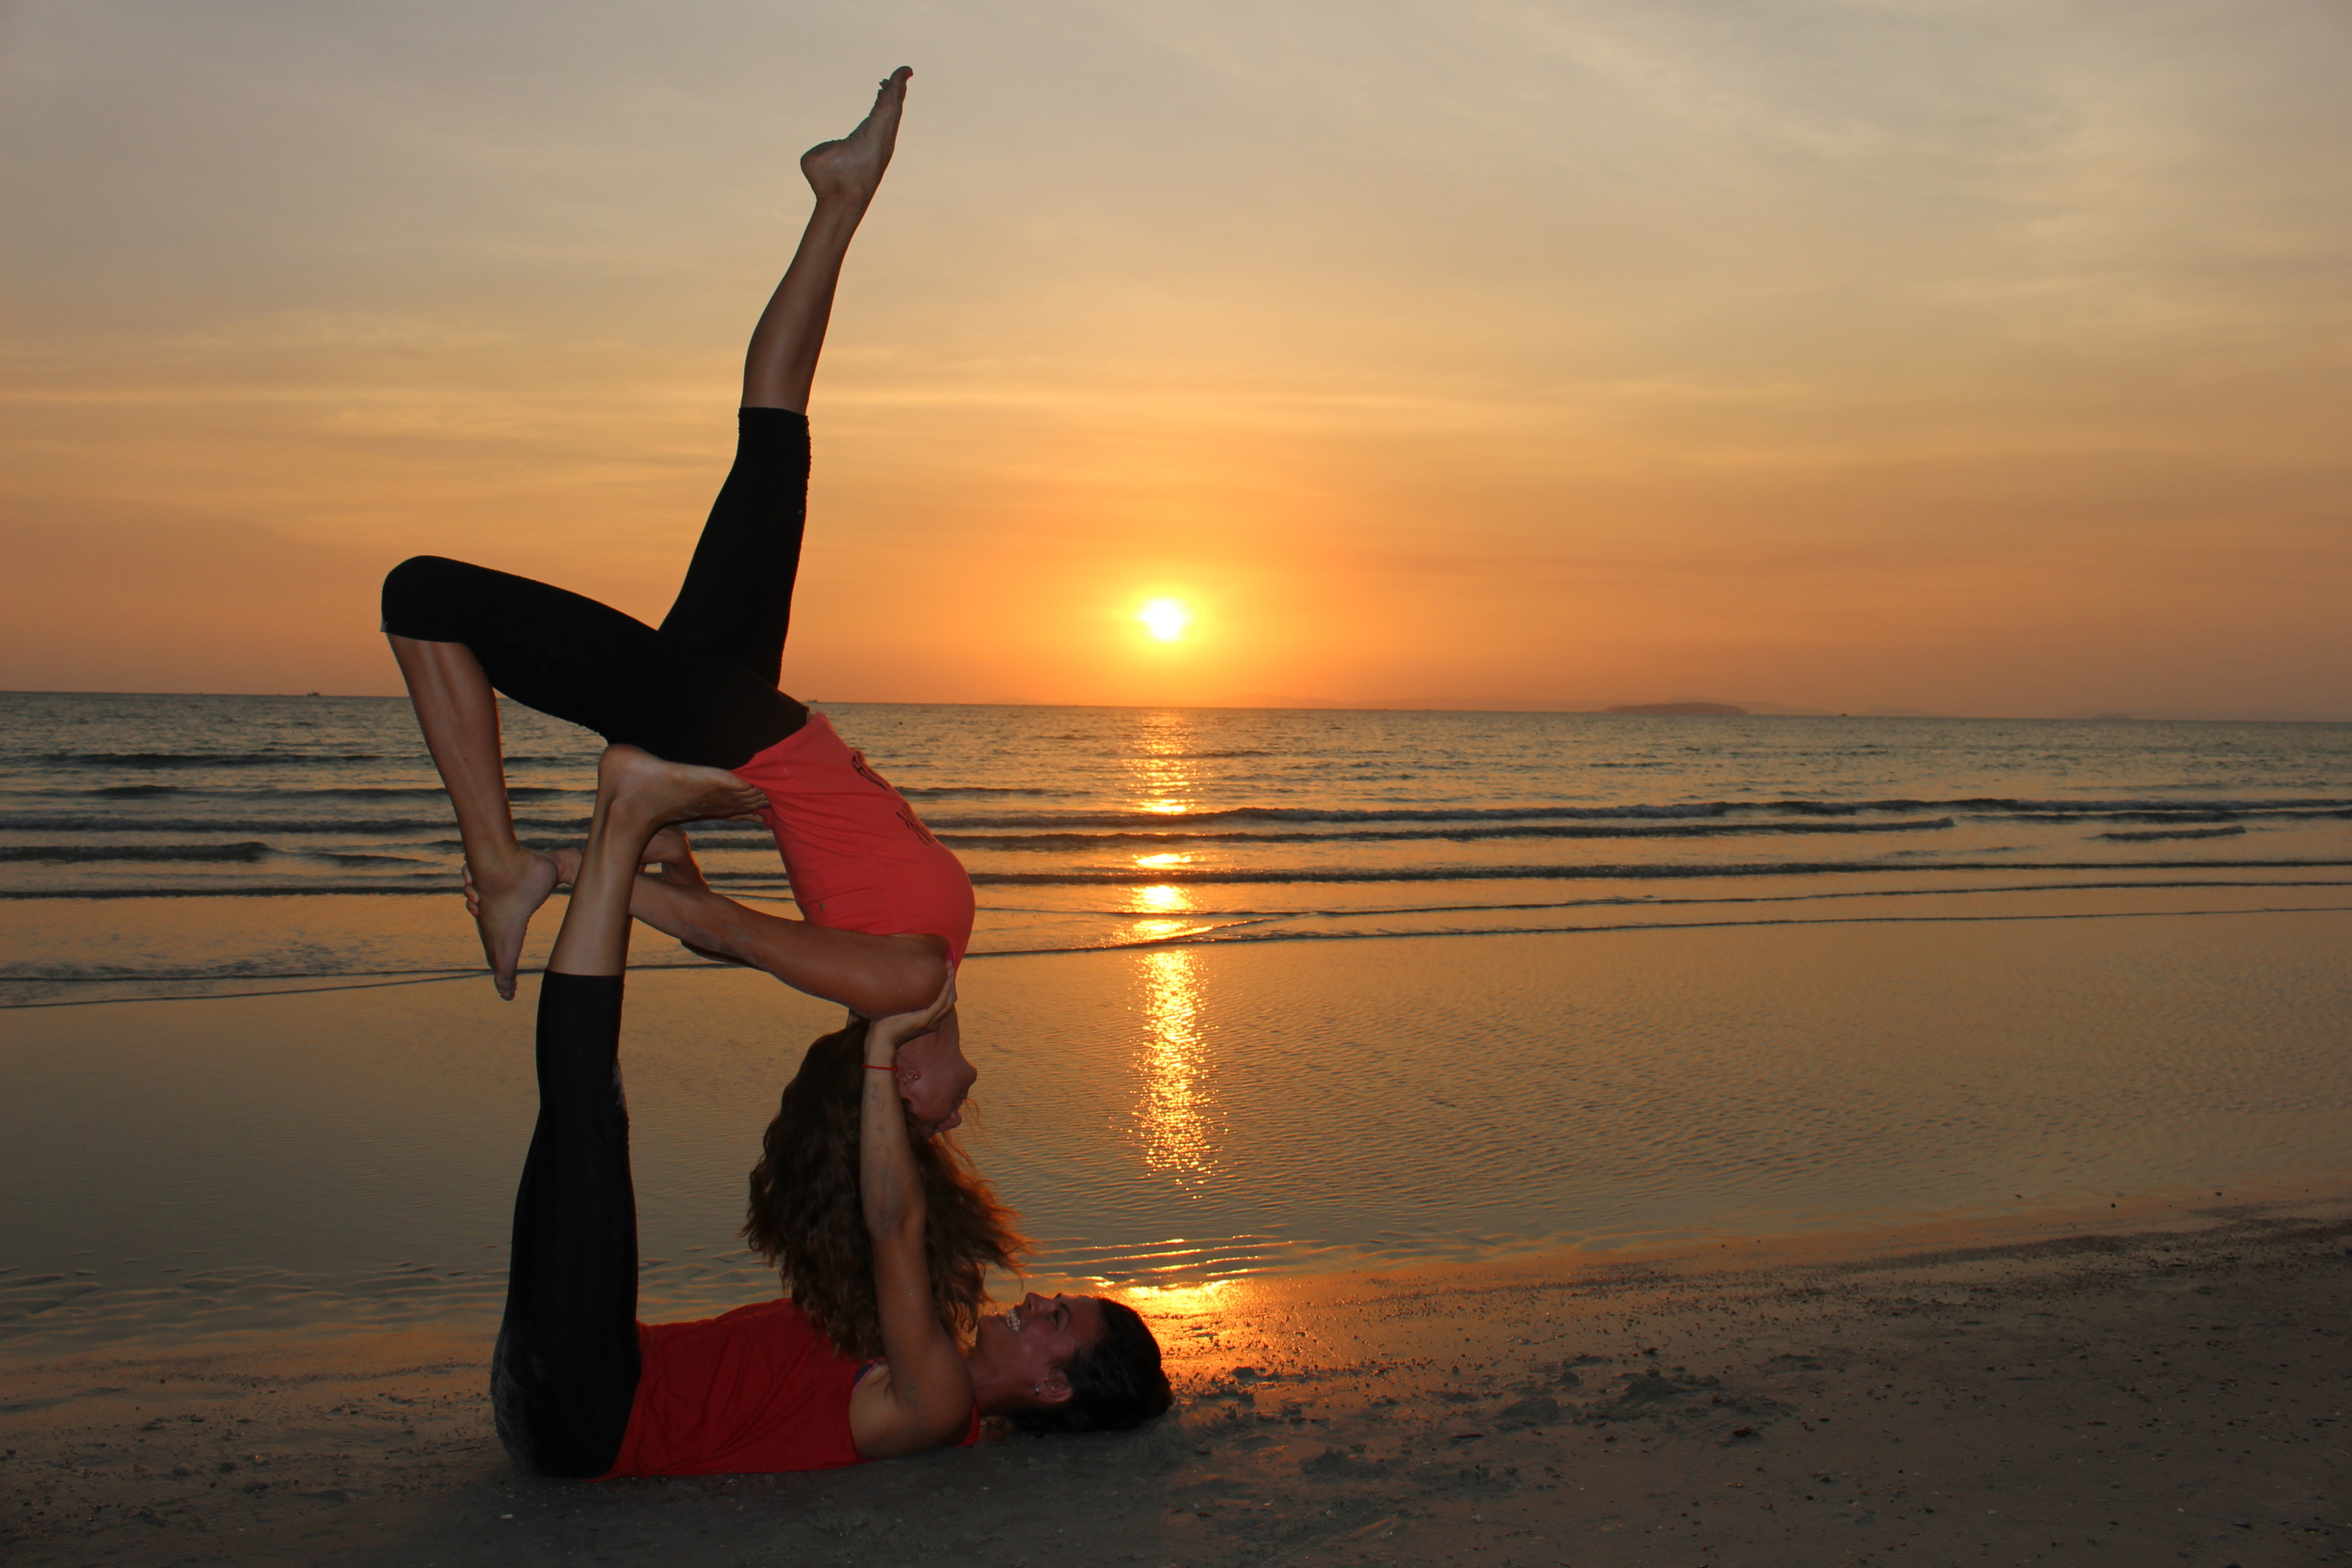 AcroYoga was offered one of the days at  Vagabond Temple . Justine and I played with some poses on the beach afterwards.